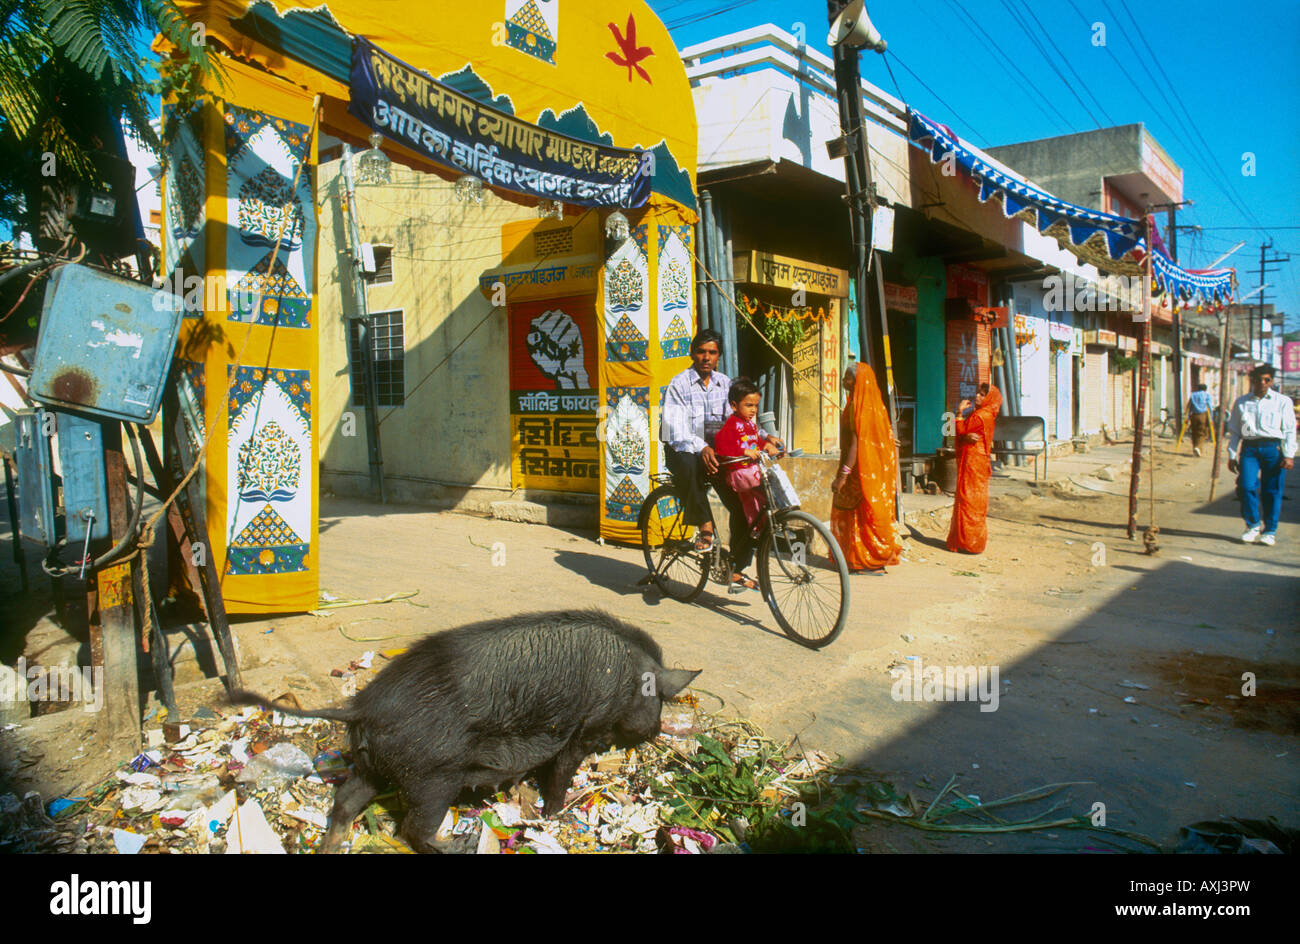 Indian Street Life In A Shabby Dirty Street Of Jaipur With